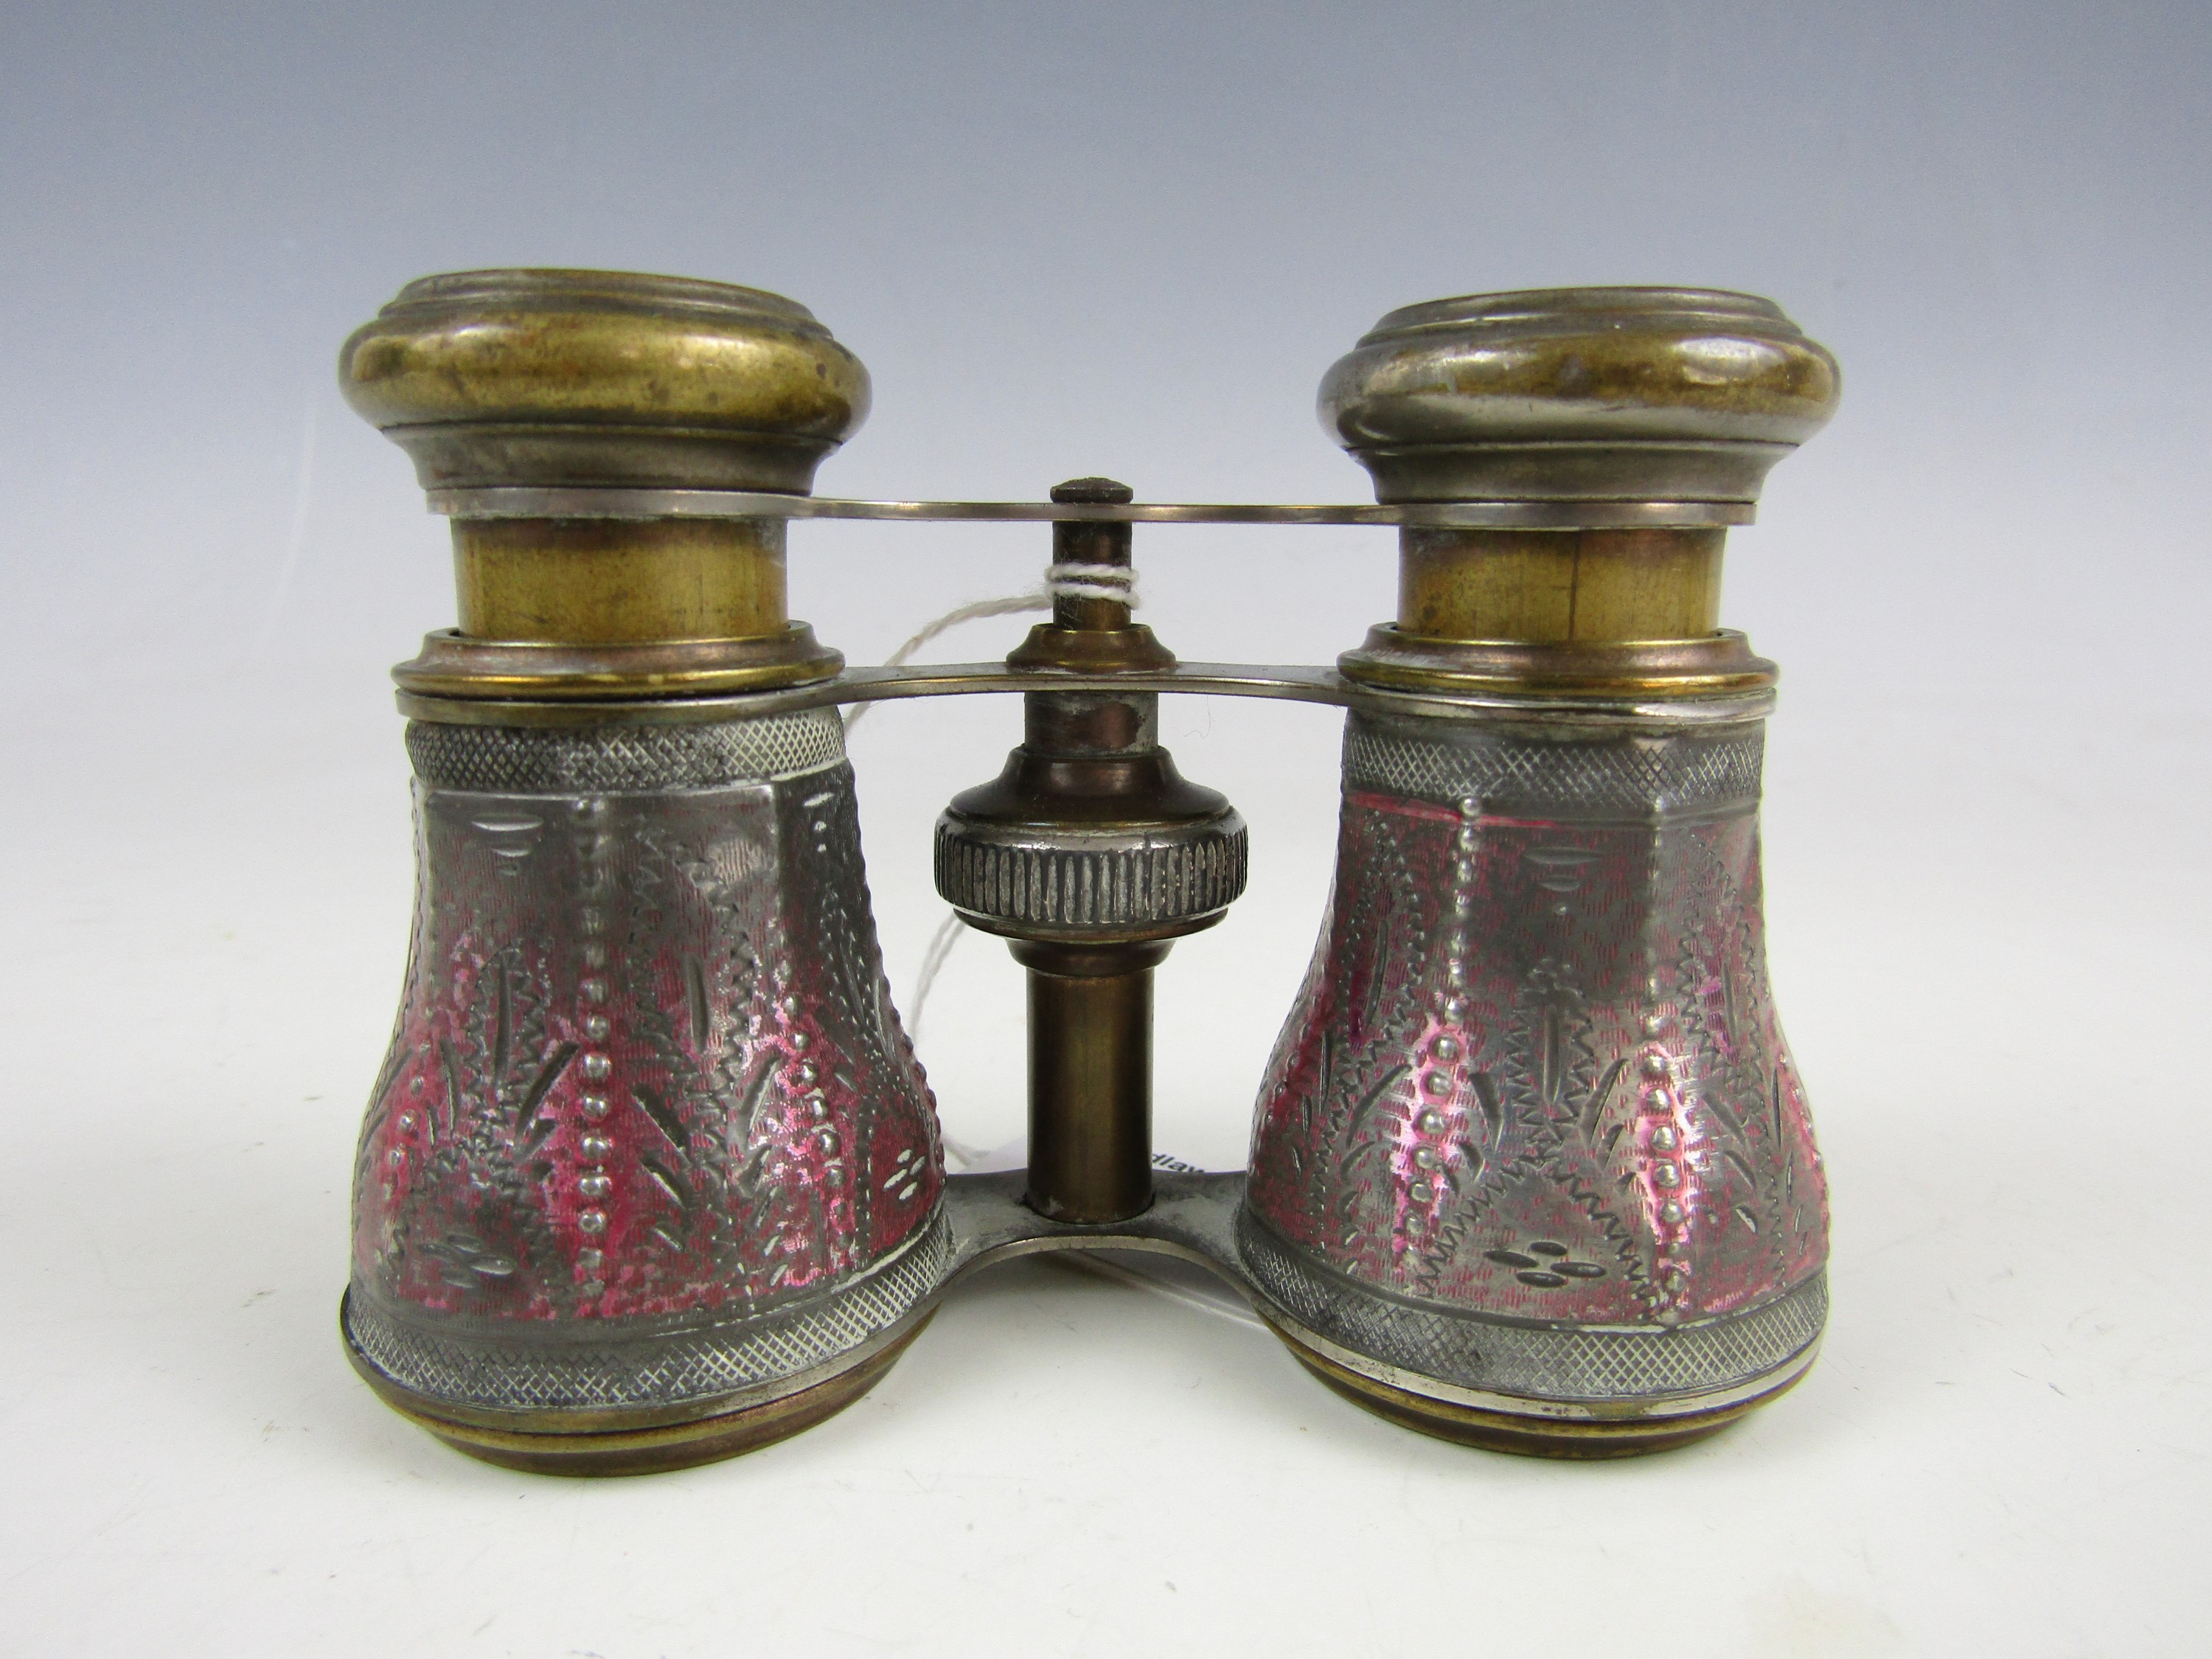 Lot 17 - A vintage pair of opera glasses